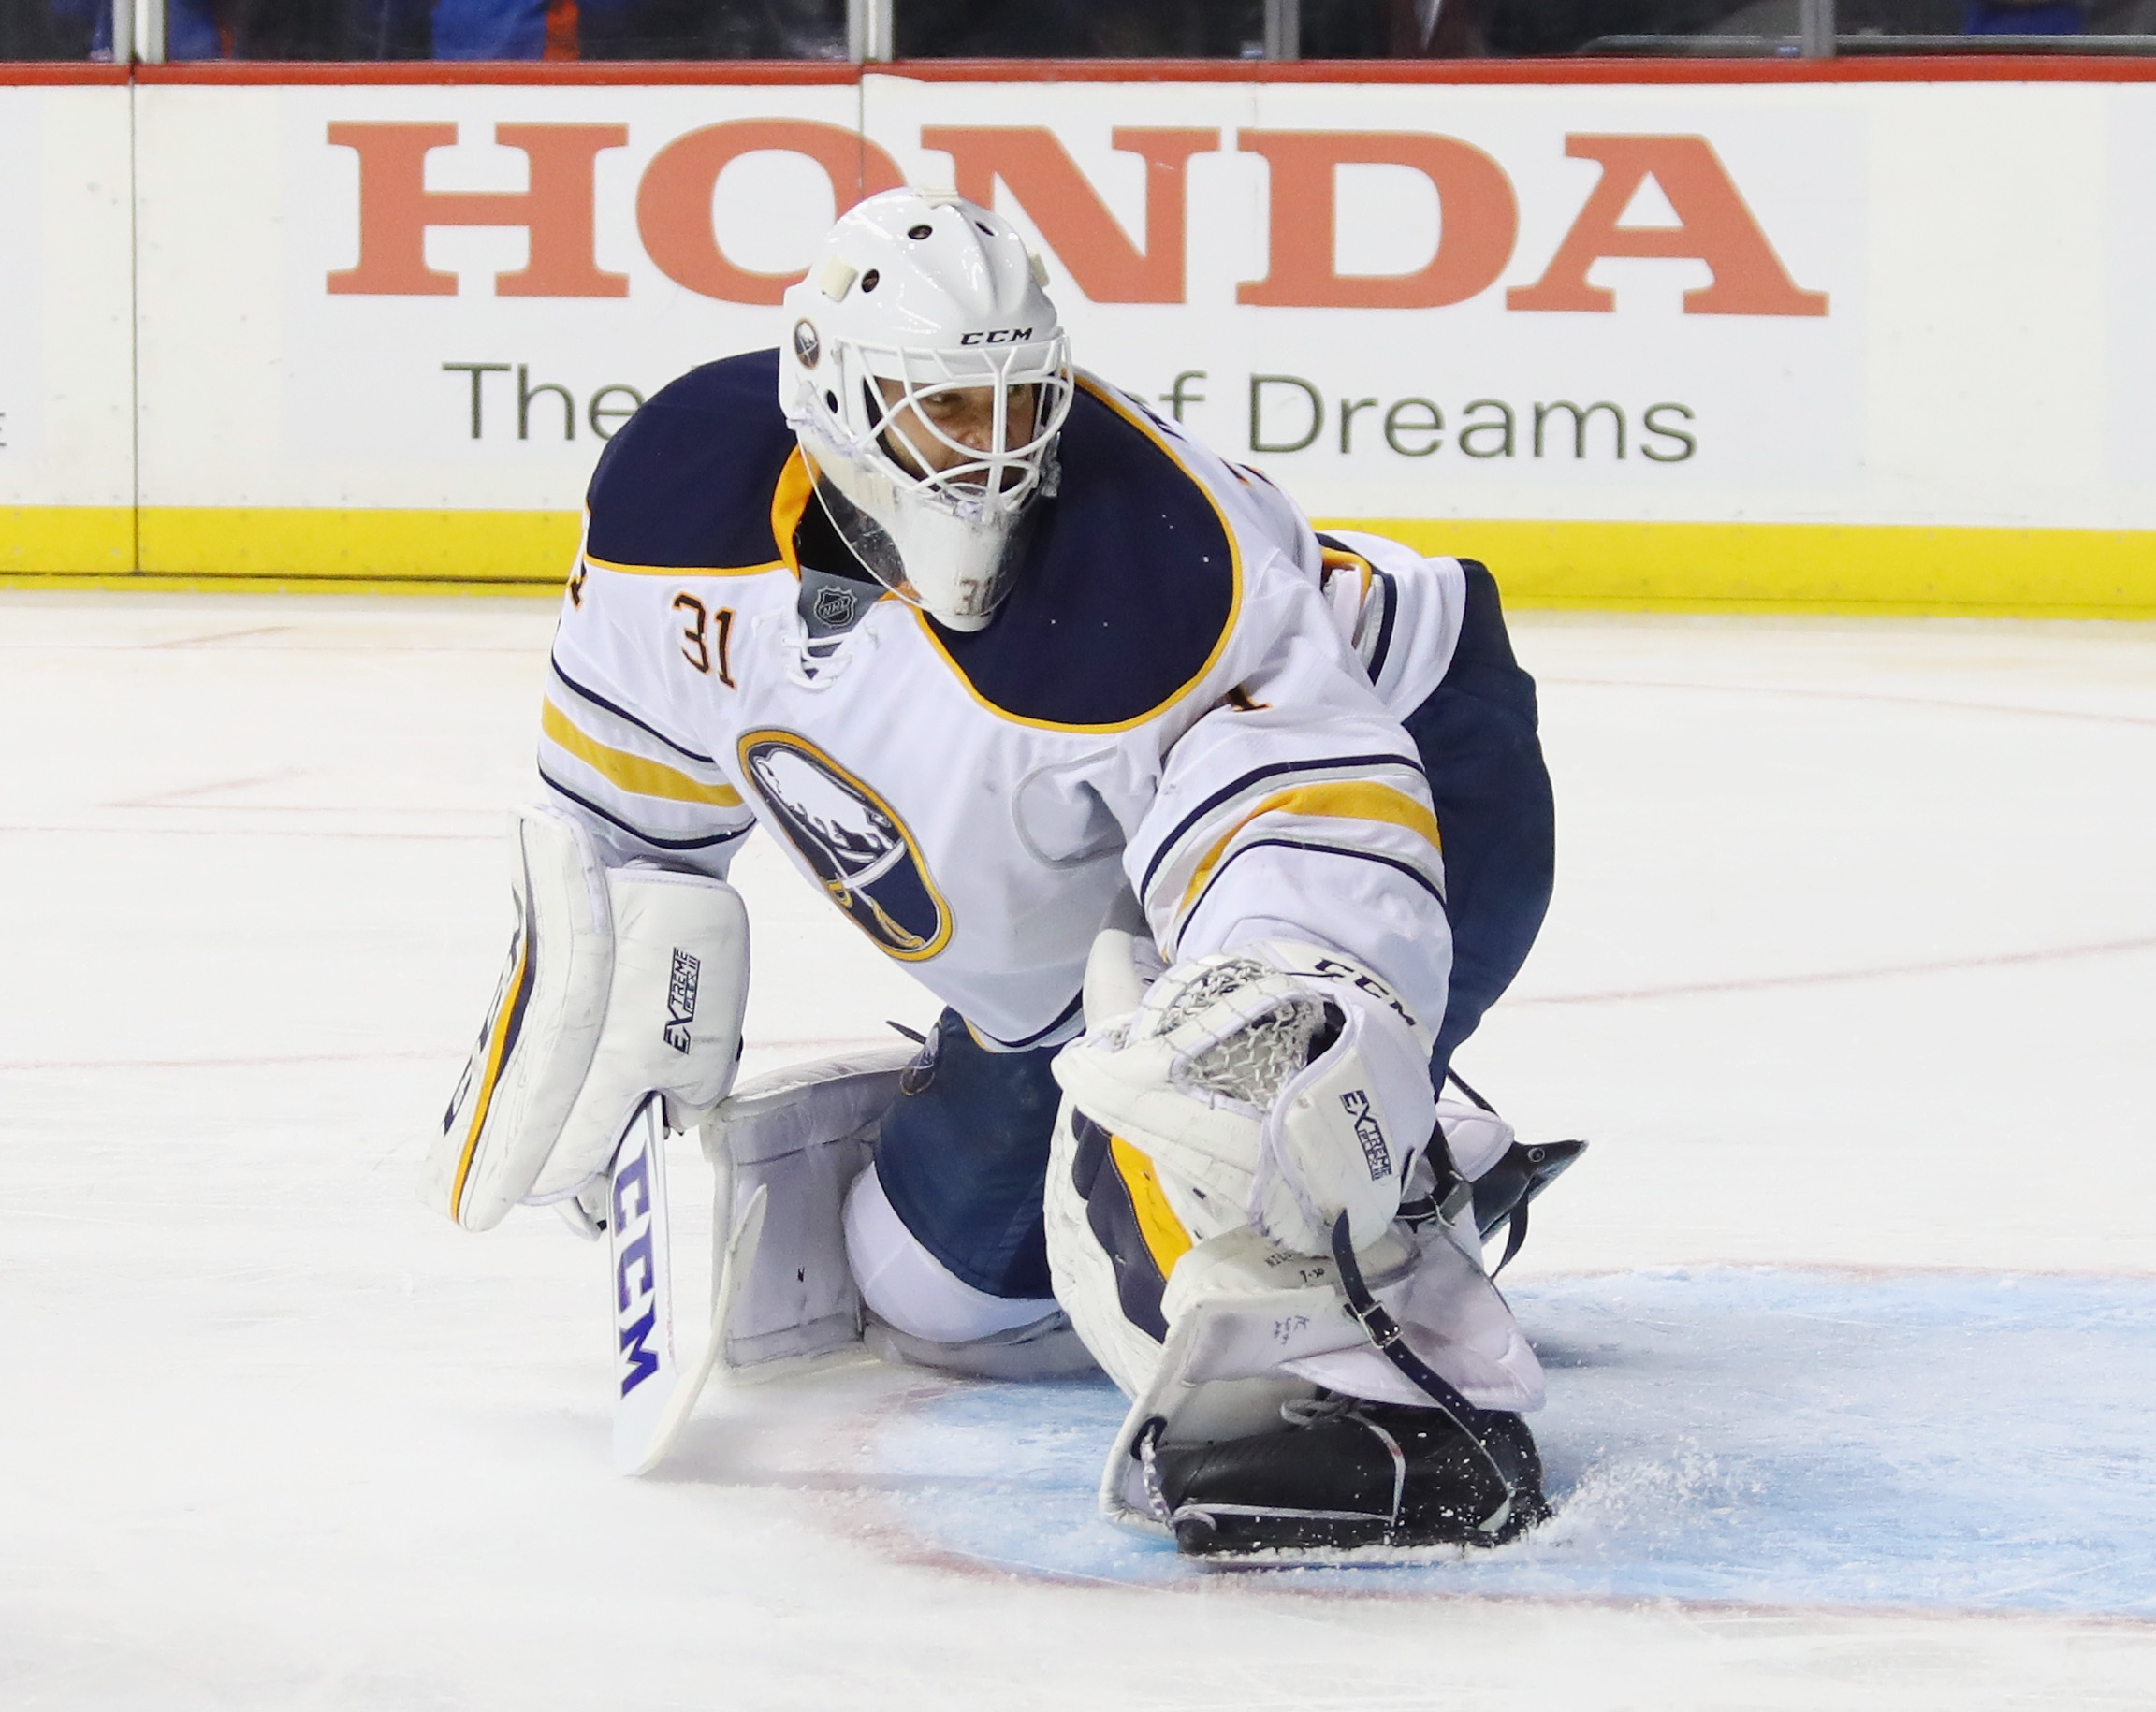 A Rochester company has made Anders Nilsson's plain mask look like his original one. (Getty Images)